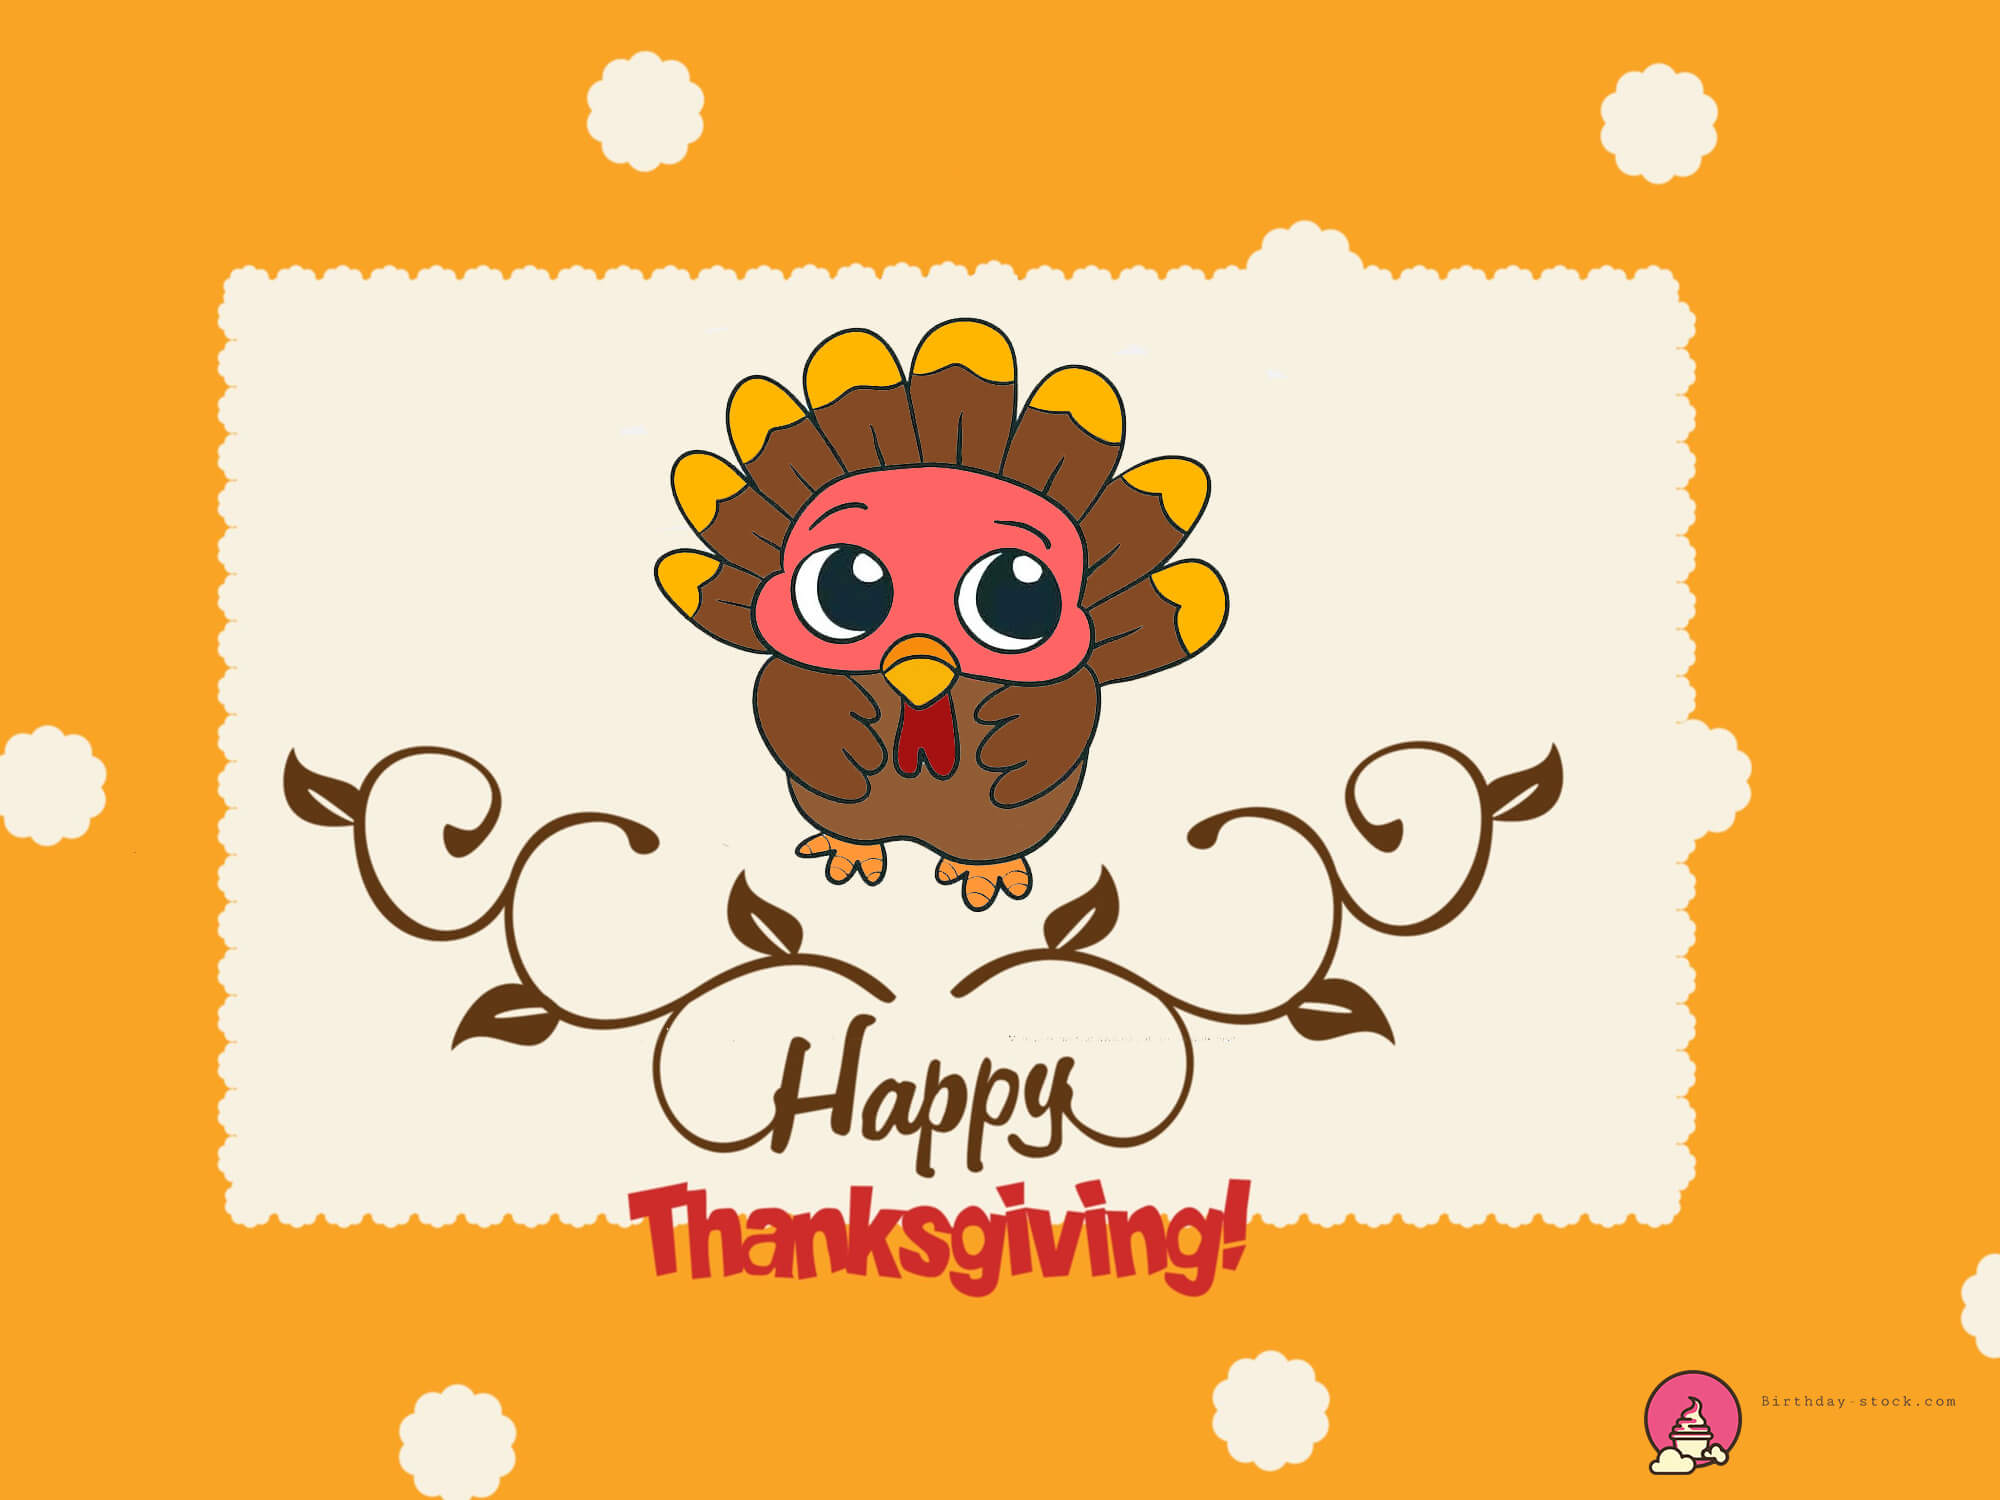 Happy Thanksgiving Images Pictures, Wallpapers Hd Free 2019